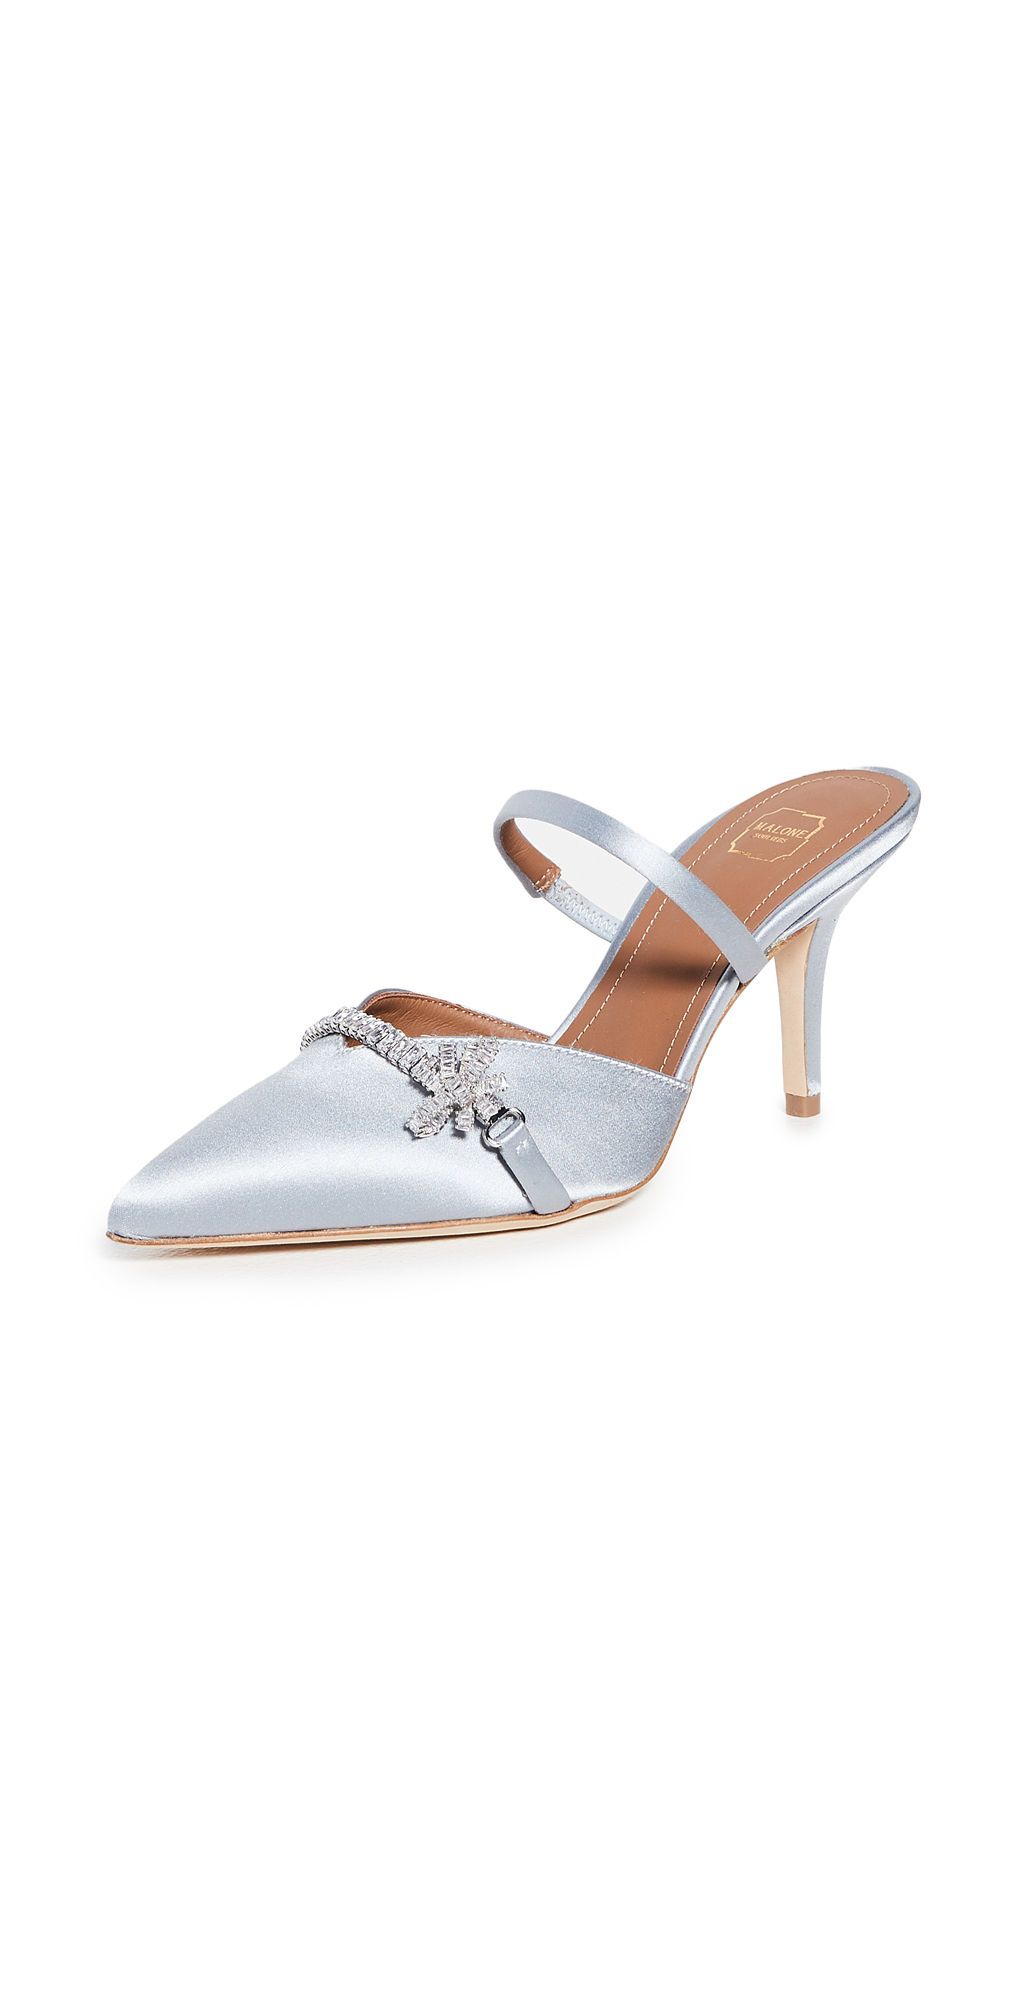 Malone Souliers 70mm Lila Pumps